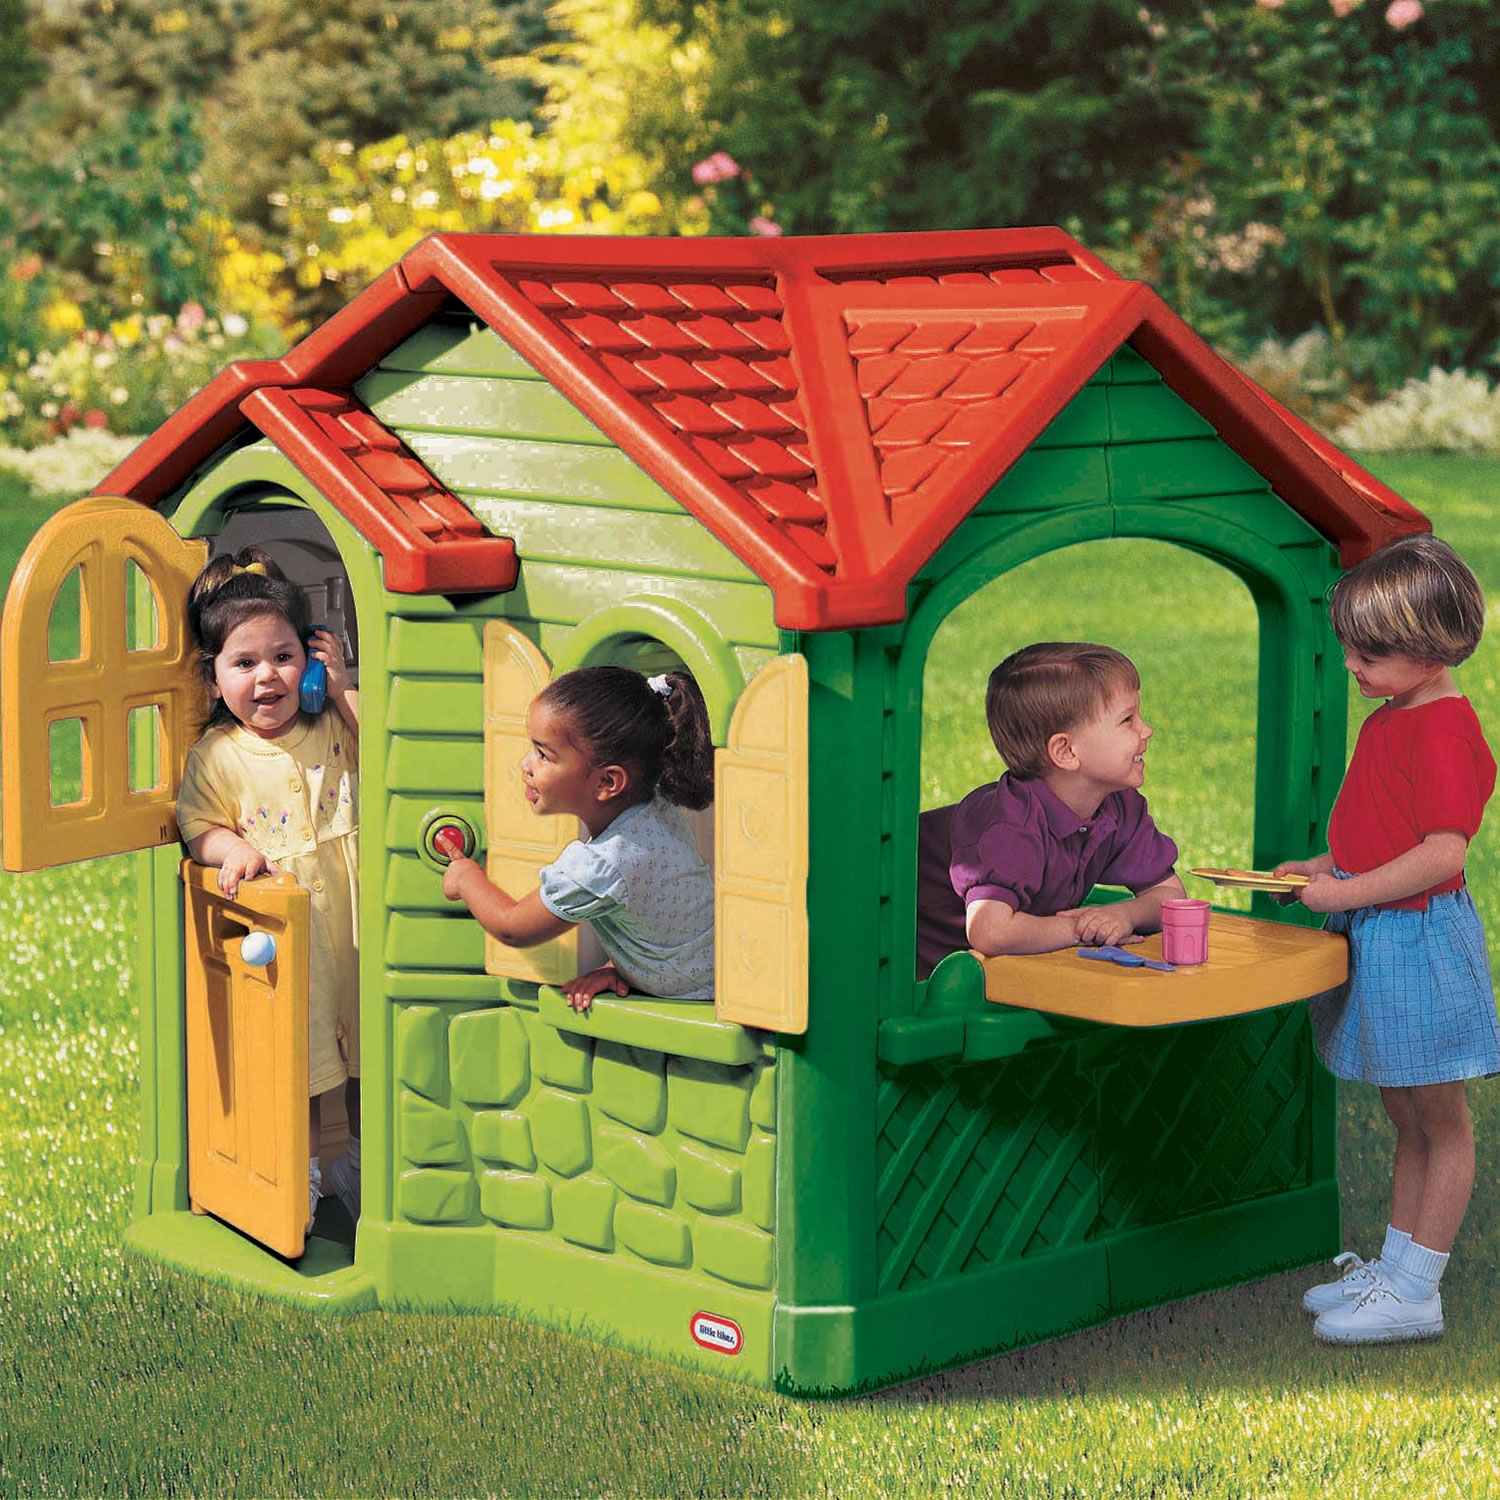 Antique Little Tikes Playhouse With Greed Siding And Red Roof For Playground Decor Ideas